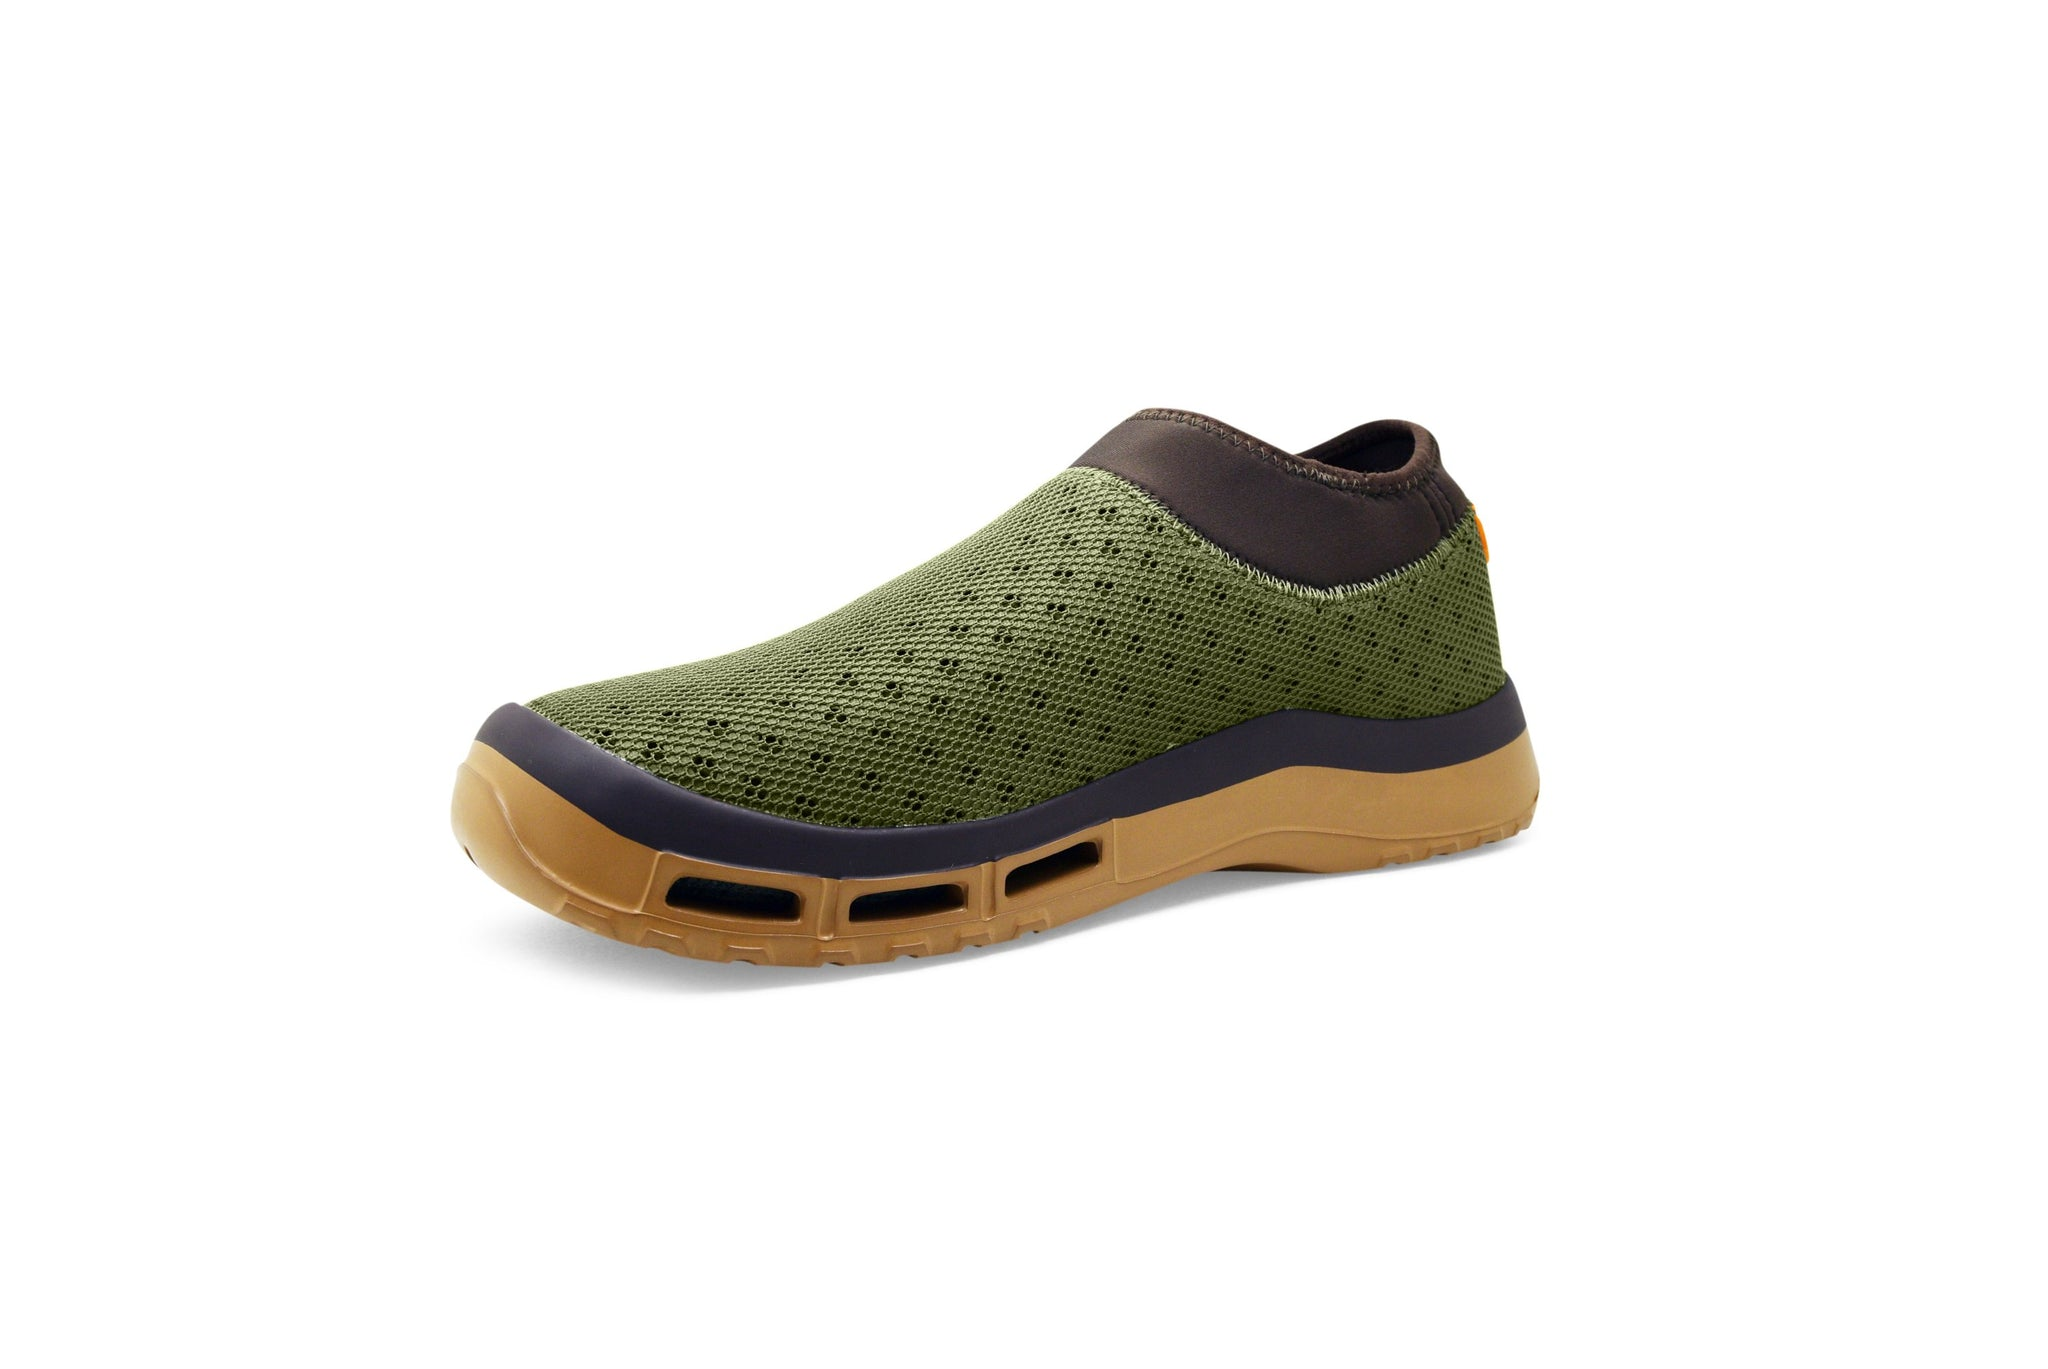 The SoftScience Fin H2O Sage - SoftScience Shoes - SoftScience footwear